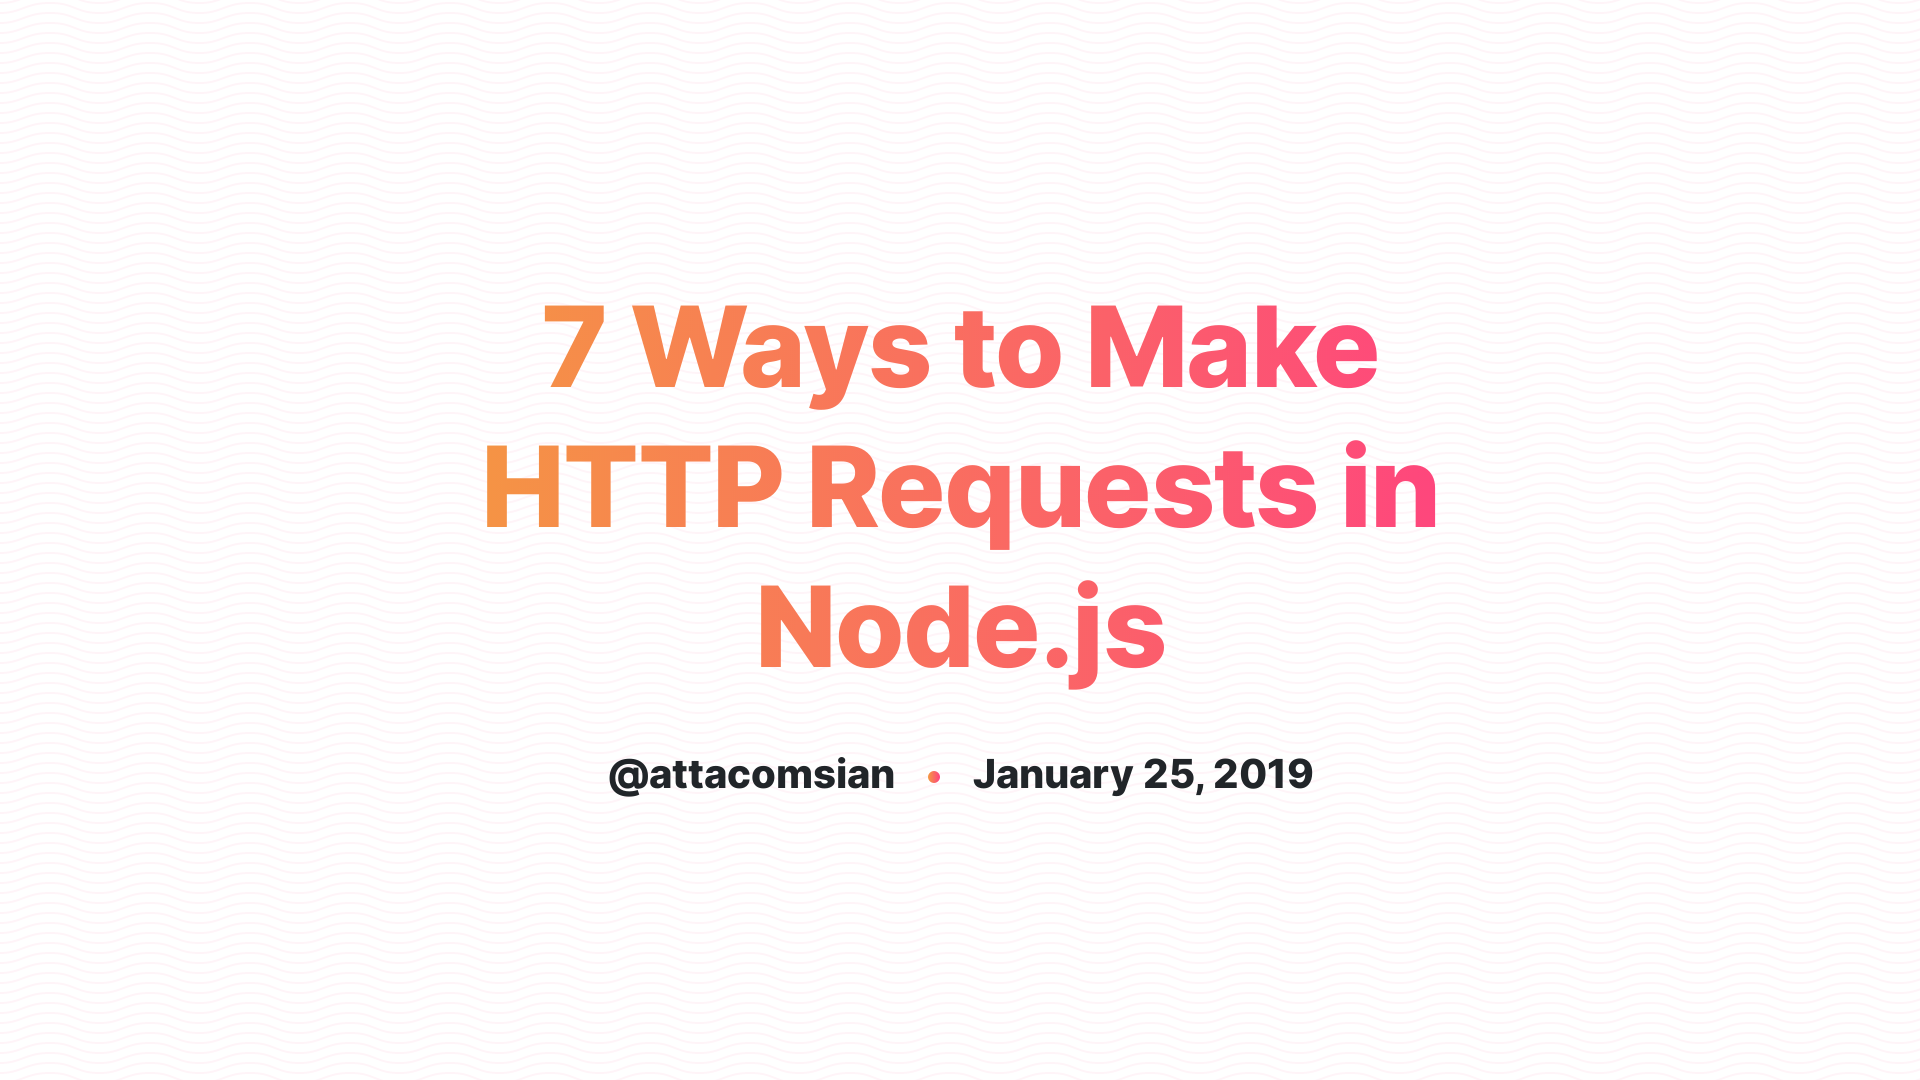 7 Ways to Make HTTP Requests in Node js